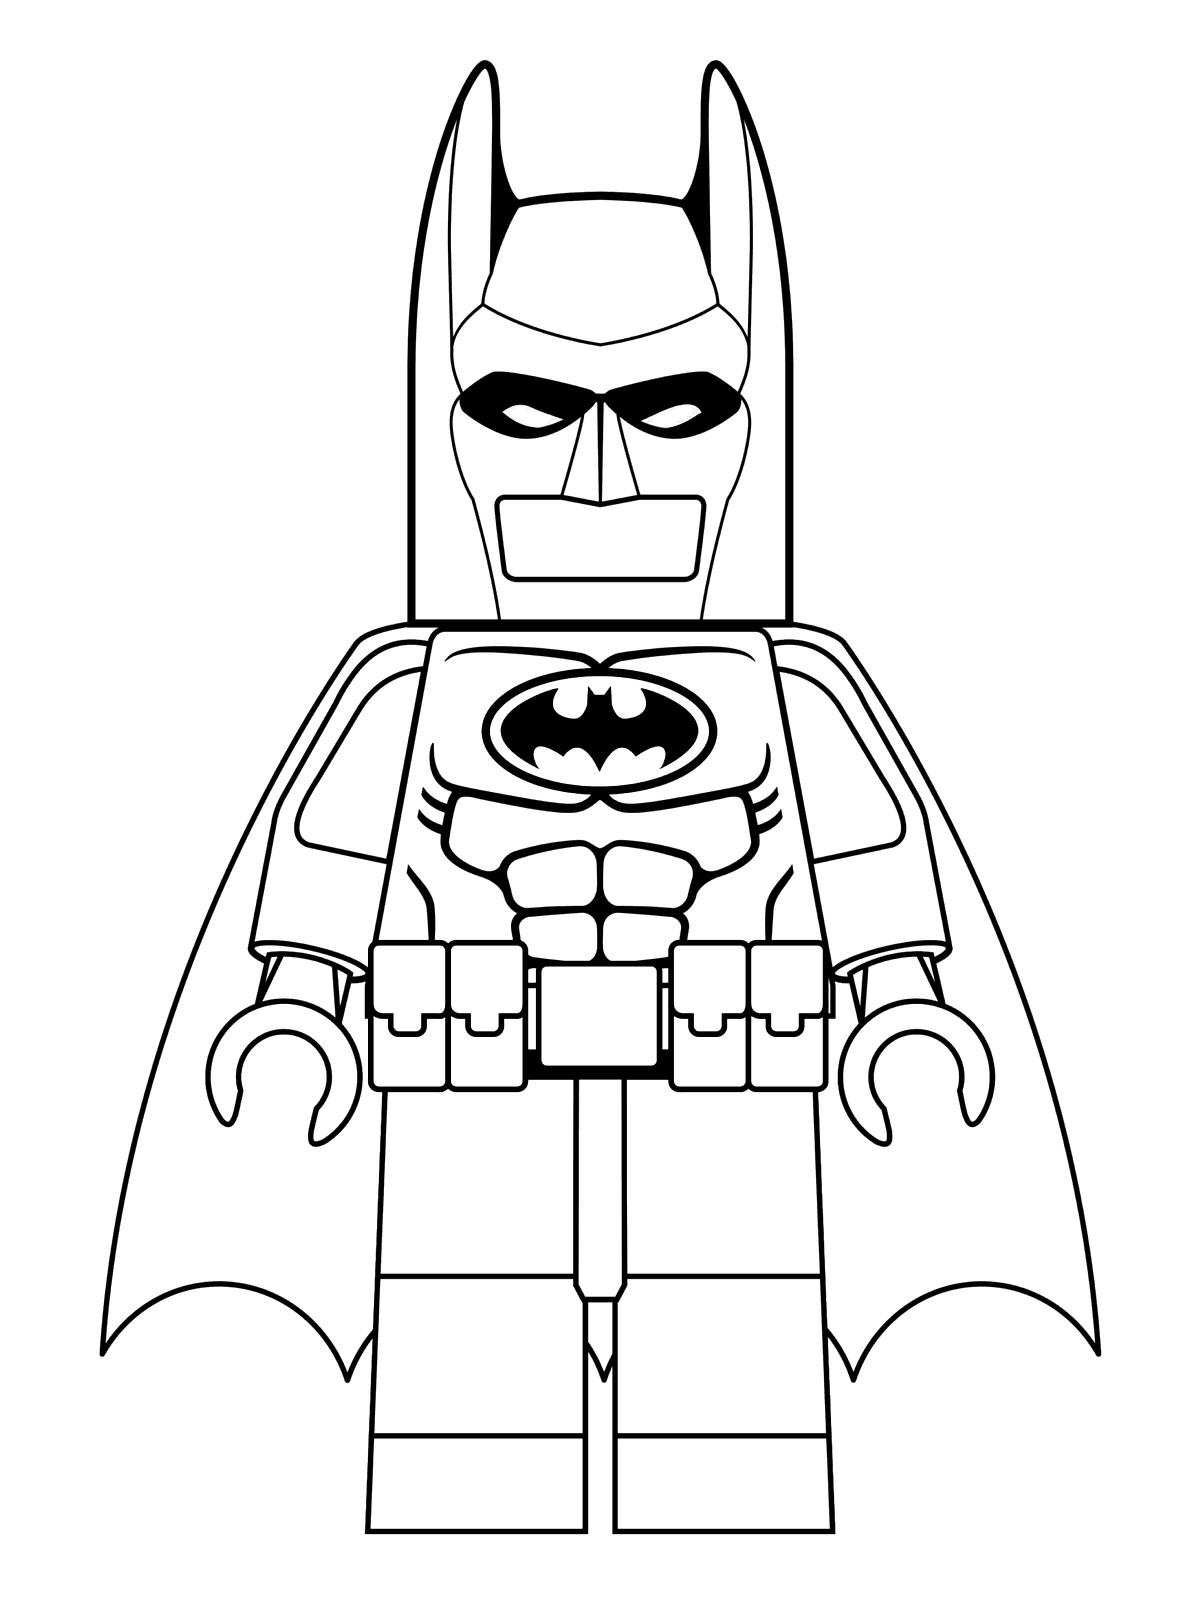 Lego Batman To Print - Lego Batman Kids Coloring Pages - Free Printable Batman Coloring Pages